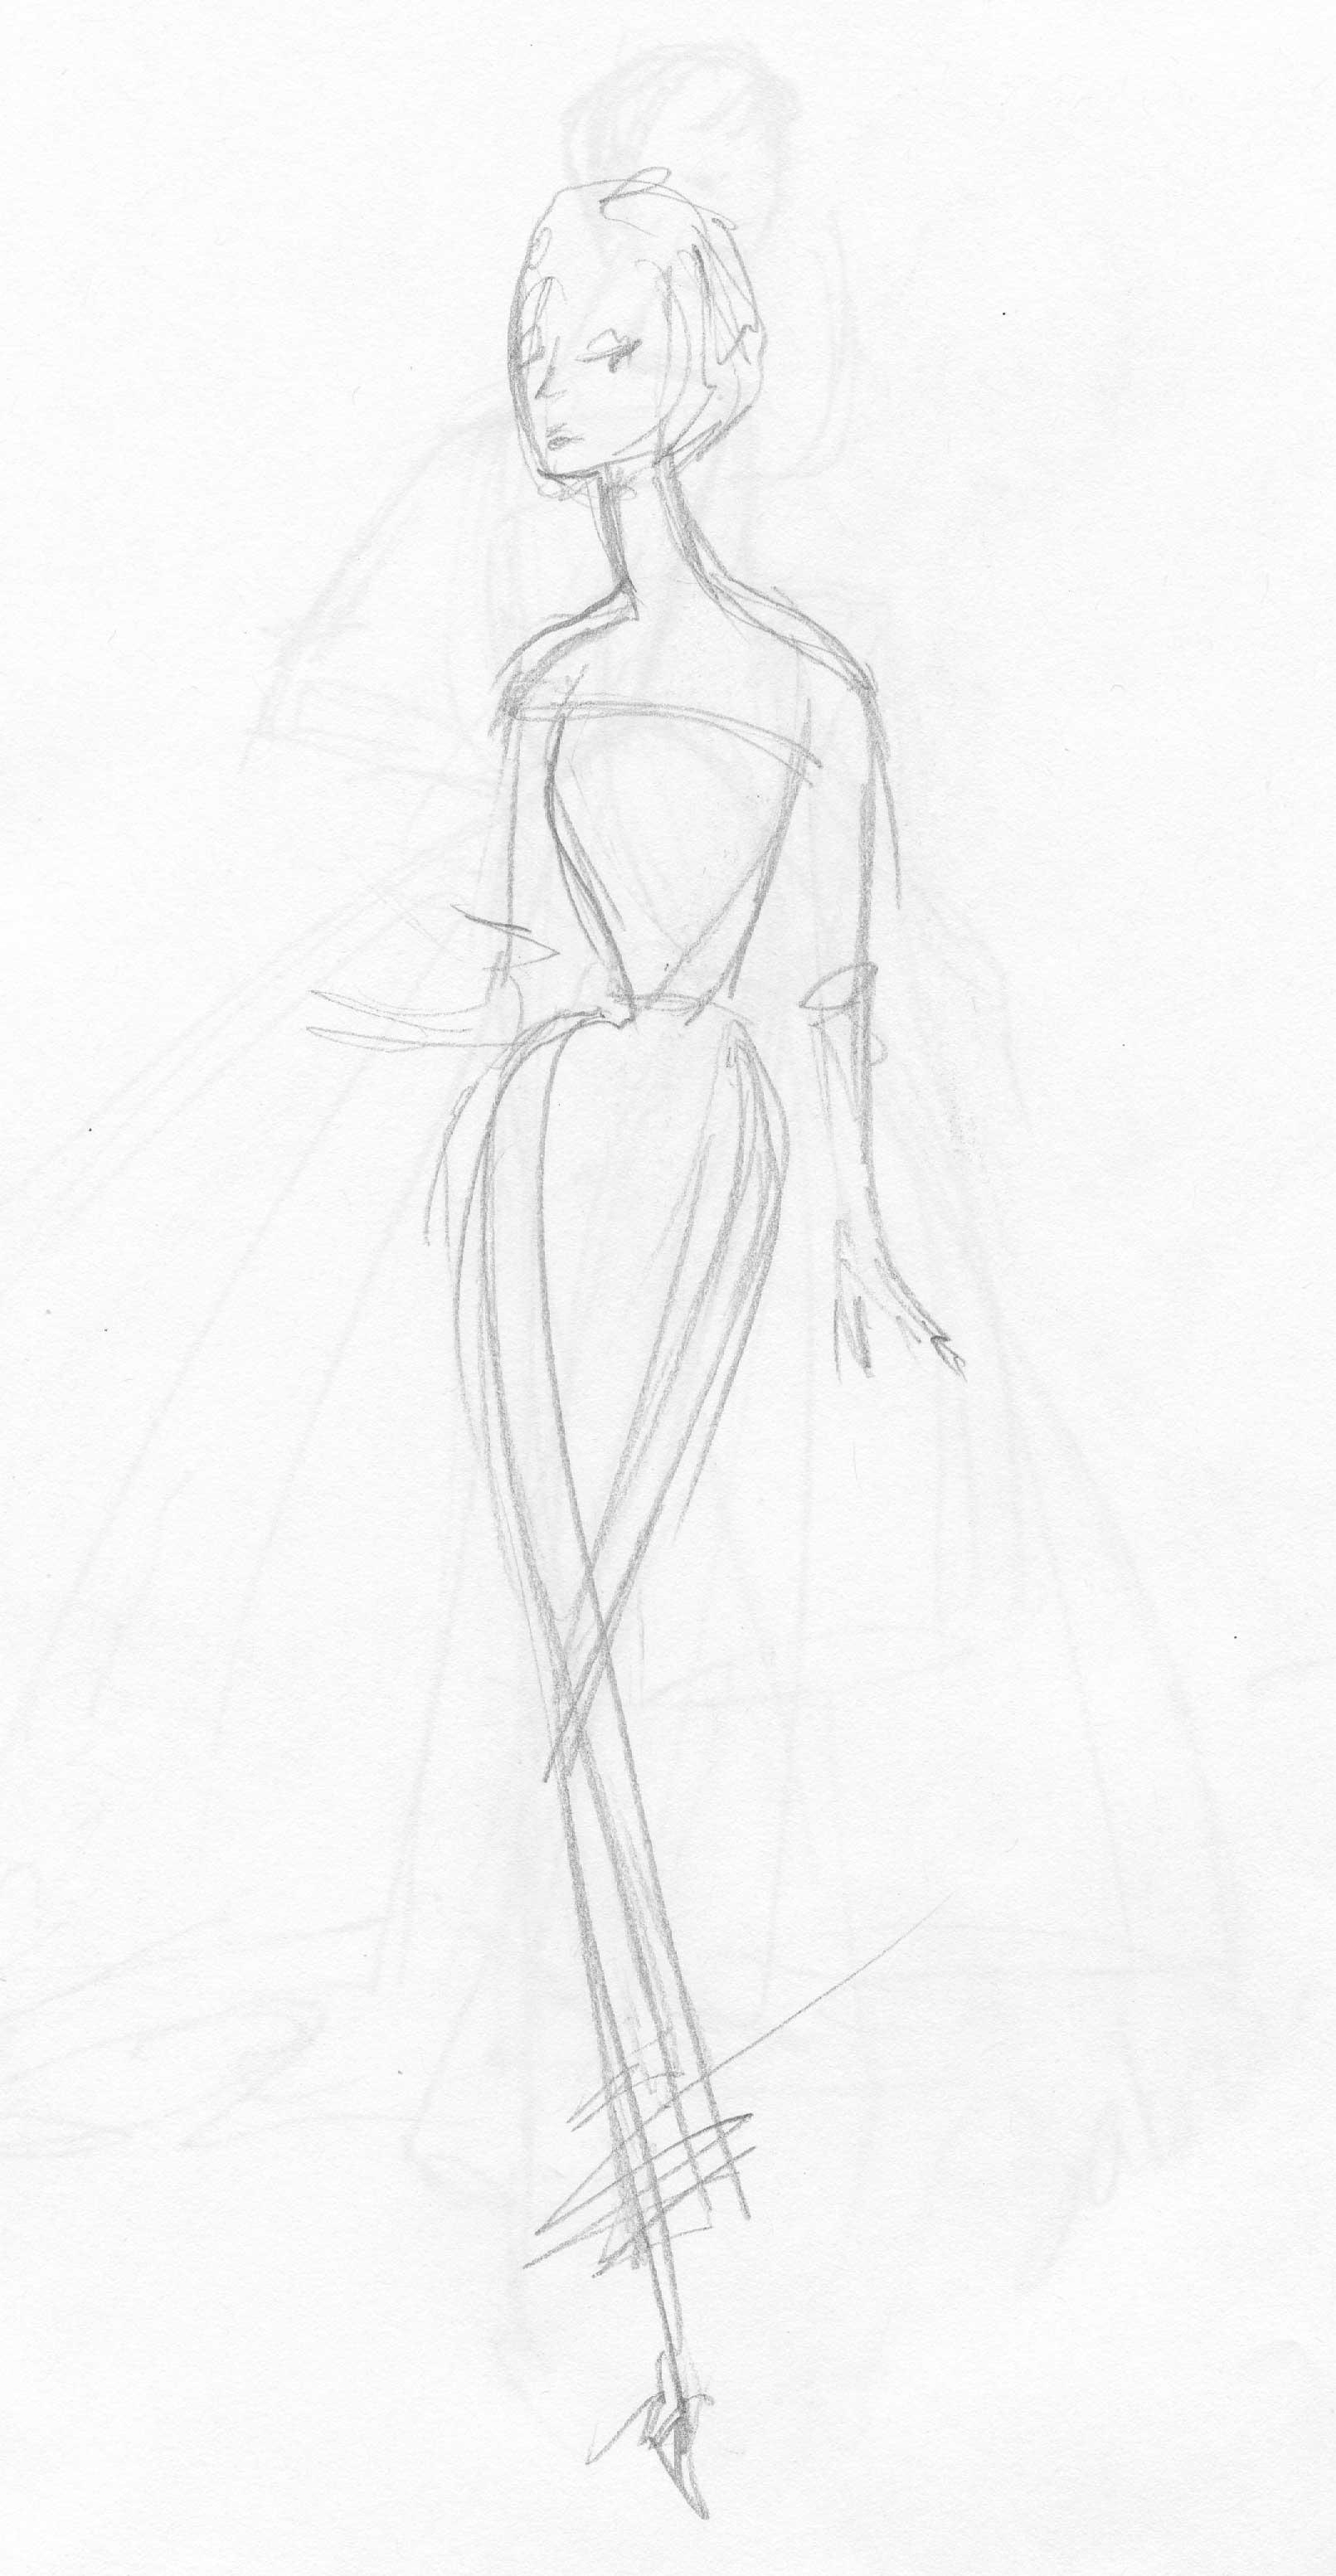 *(SKETCHES)* a walk down memory lane - image 27 - student project